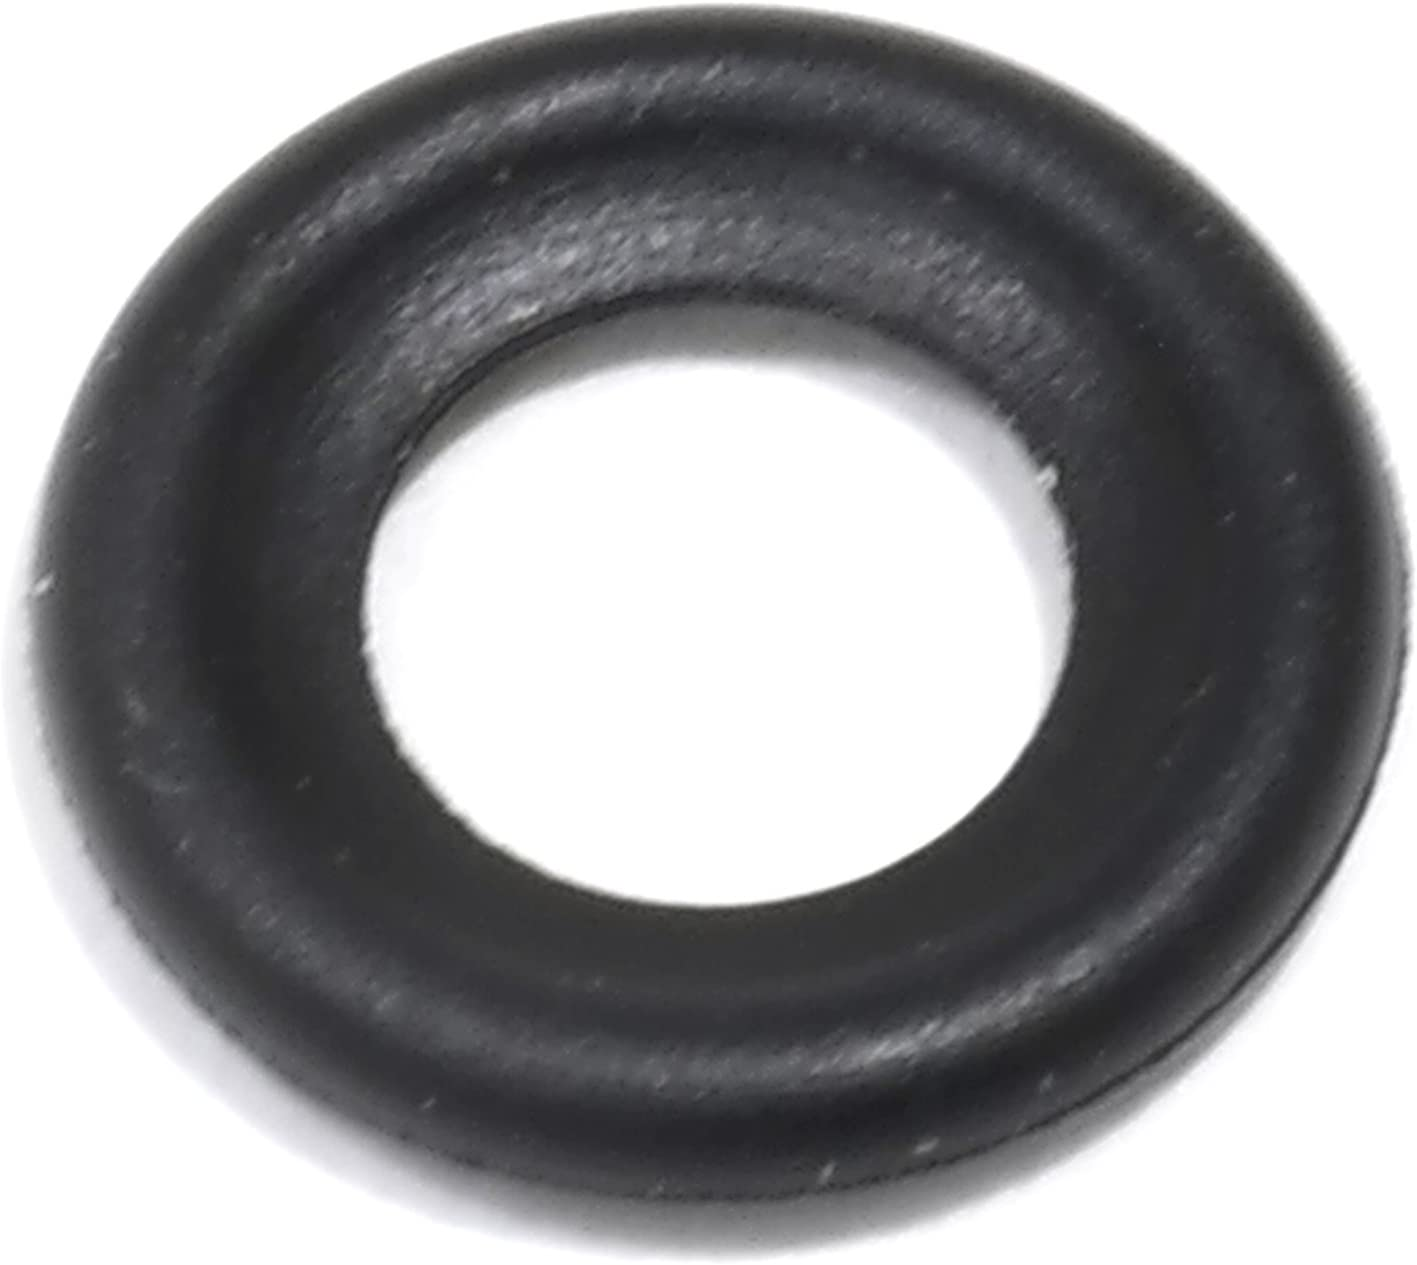 Super sale GMC OEM Limited price sale New Engine Cooling System O-Ring 04-13 Pipe Chevrolet Po